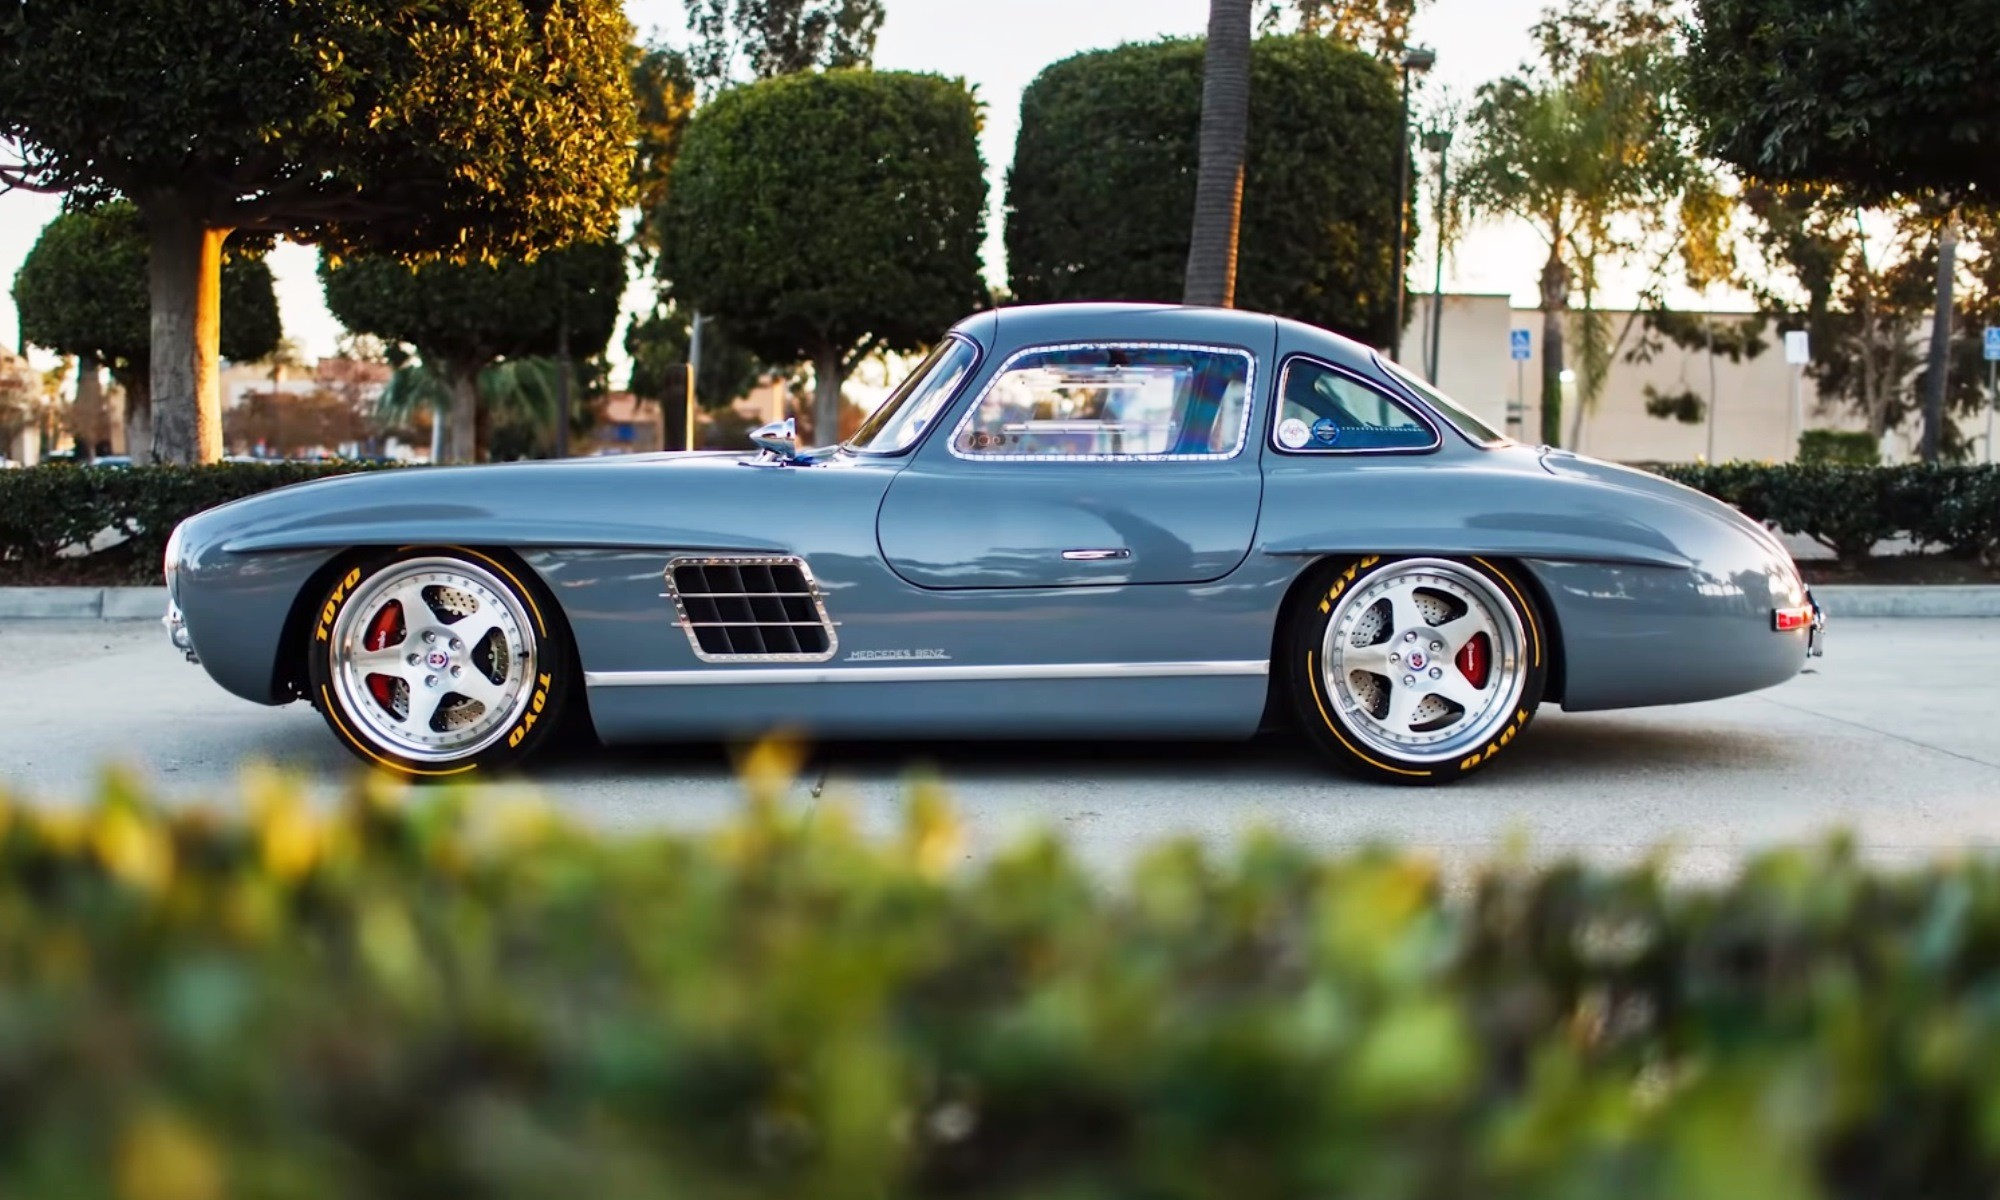 Mercedes-Benz 300SL Gullwing Clone profile